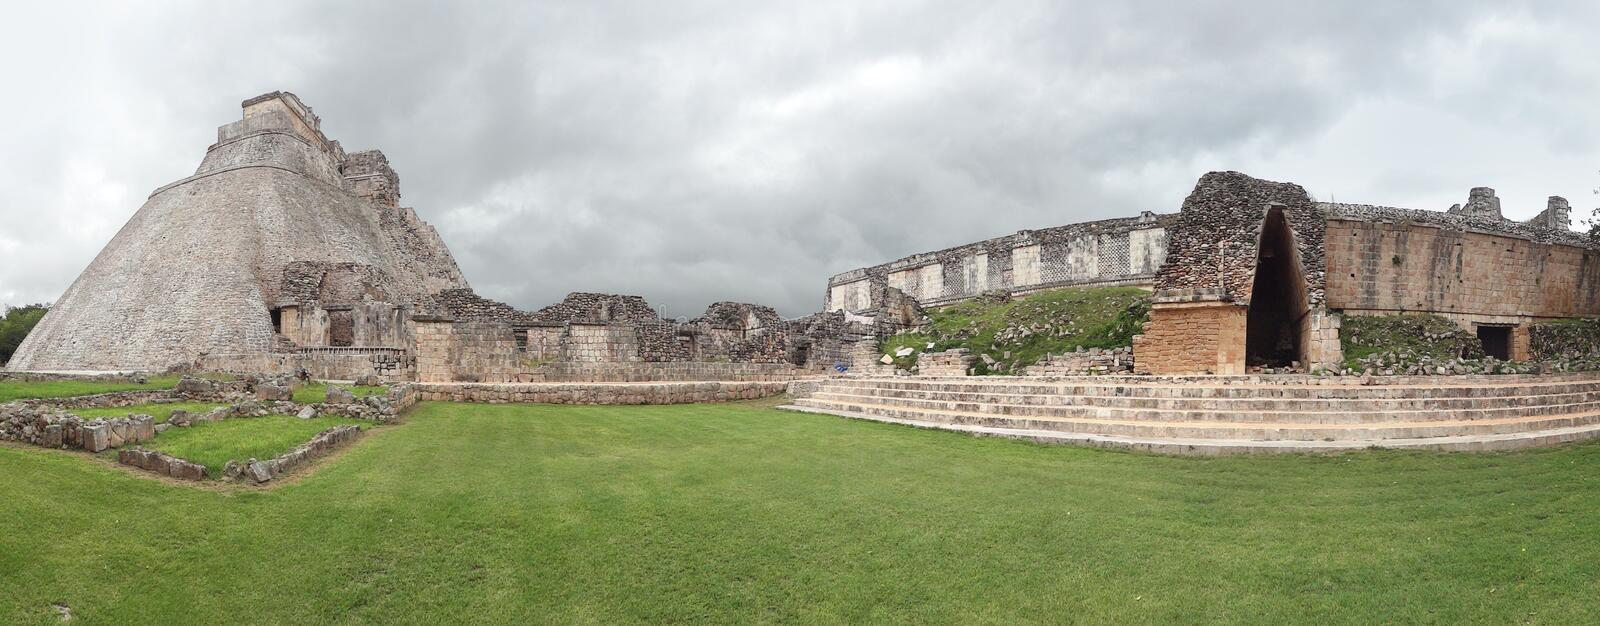 Mayan temple in Uxmal royalty free stock photography